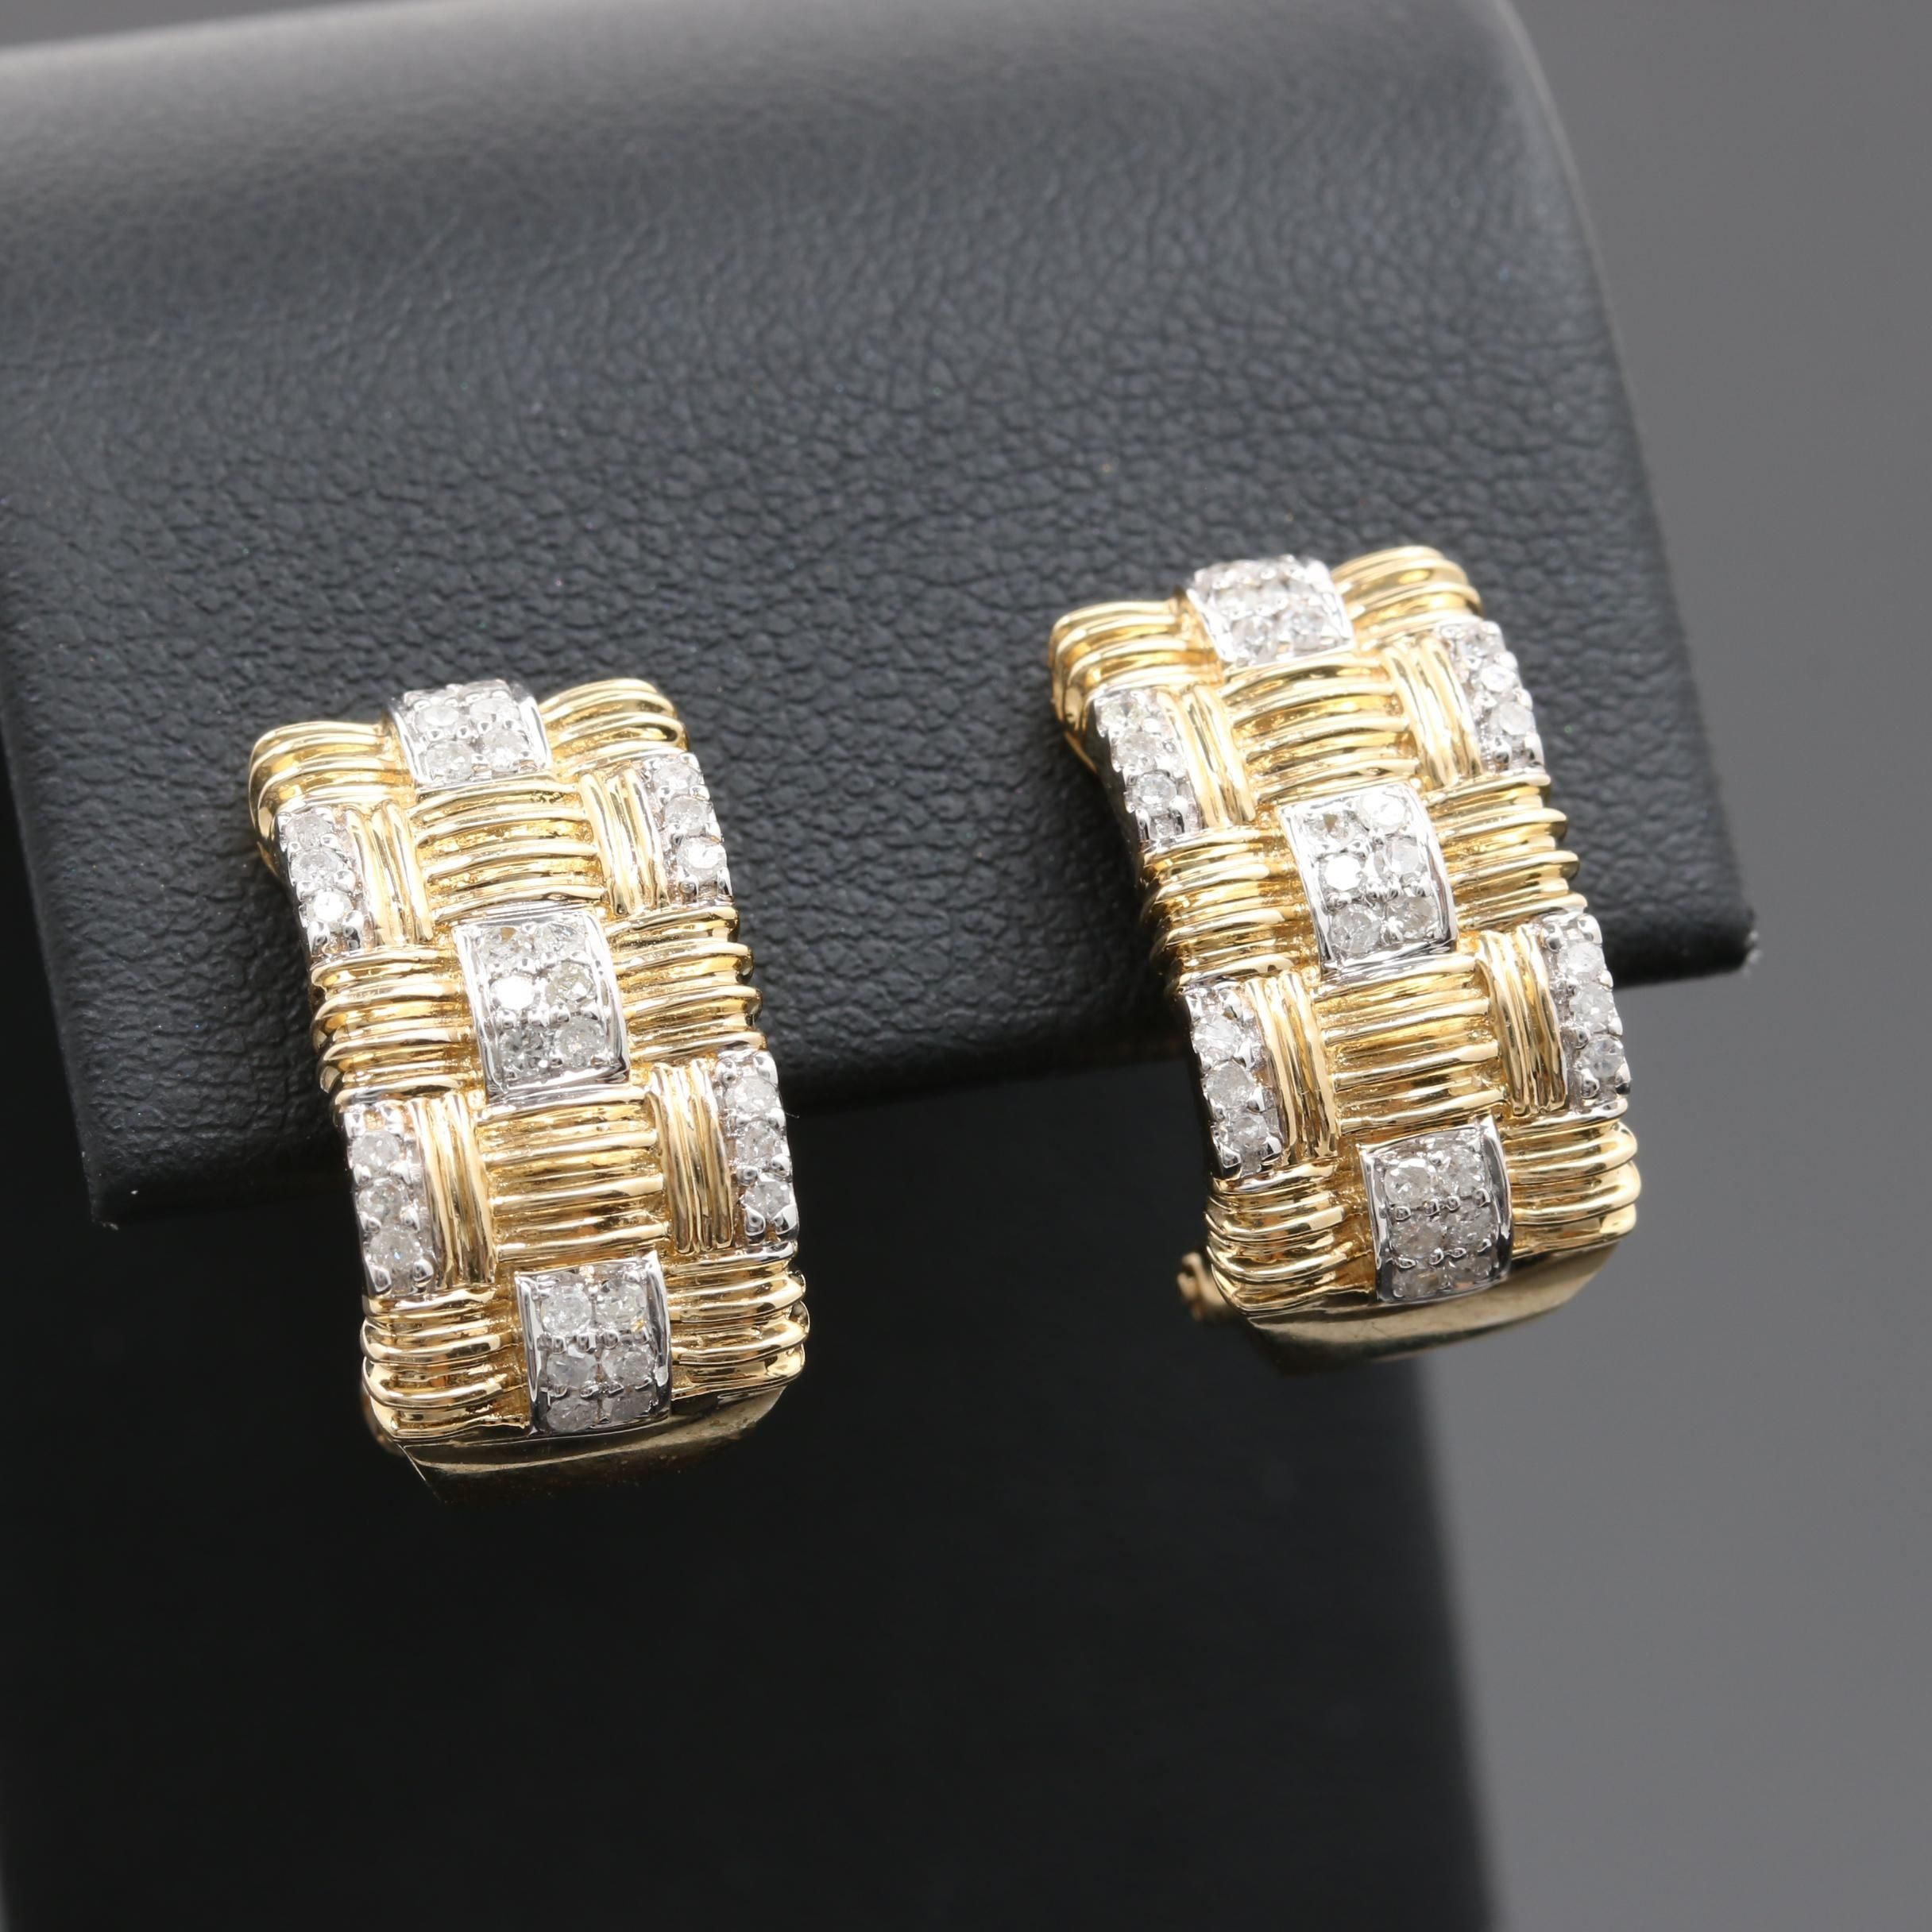 14K Yellow Gold Diamond J-Hoop Earring with 14K White Gold Accents